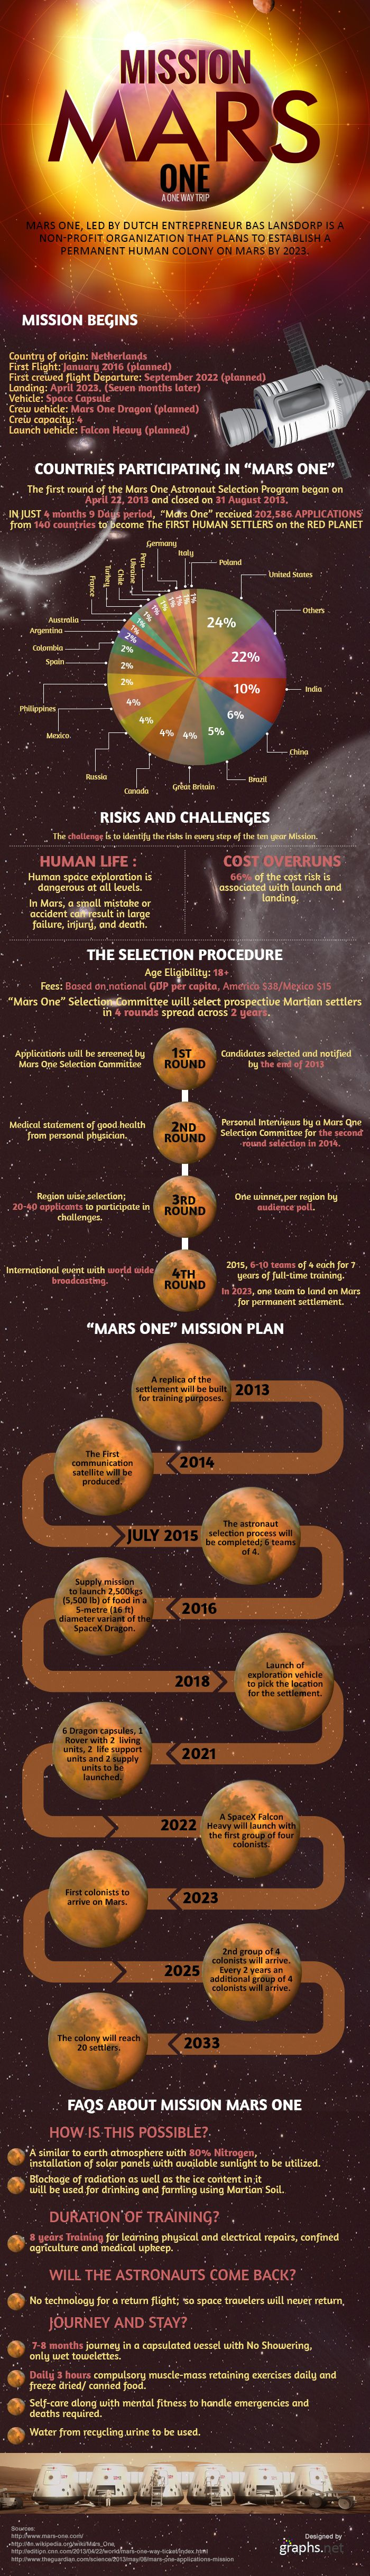 Mars One is a non-profit foundation that plans to establish a permanent human settlement on Mars by 2023. The private spaceflight project is led by Dutch entrepreneur Bas Lansdorp and has been endorsed by Nobel Prize-winning physicist Gerard't Hooft. #Mars